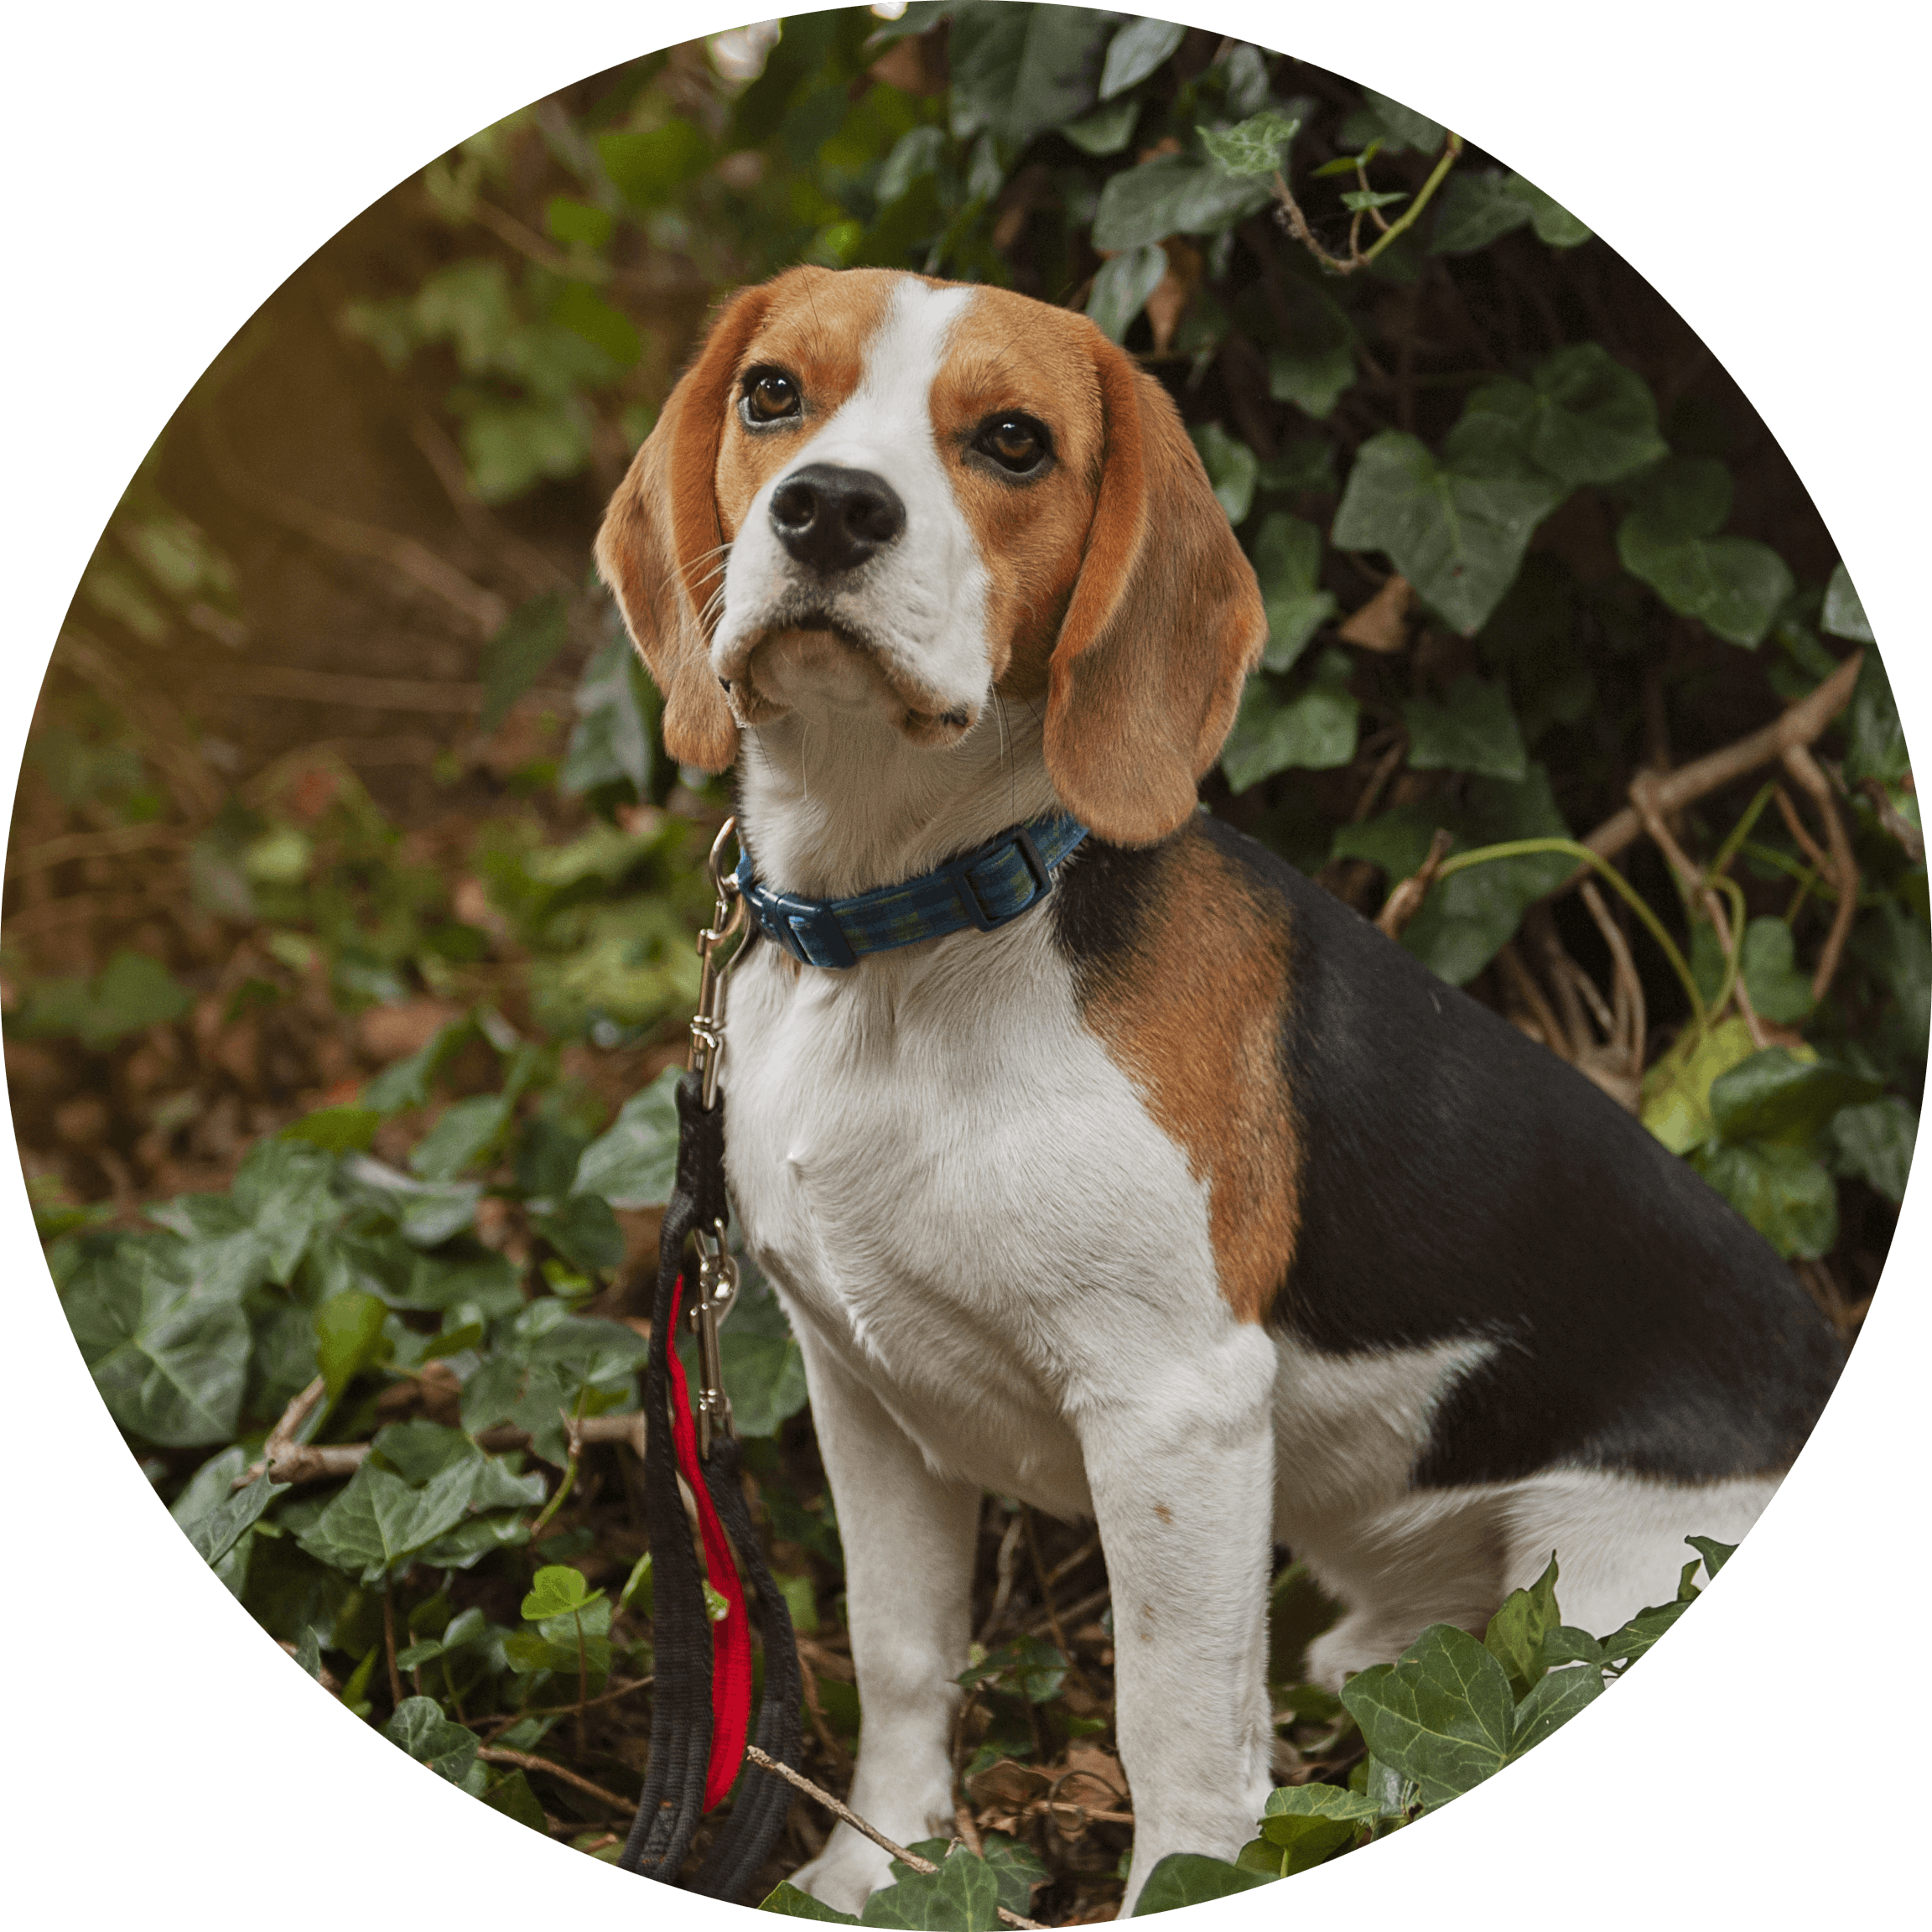 Balloo the beagle